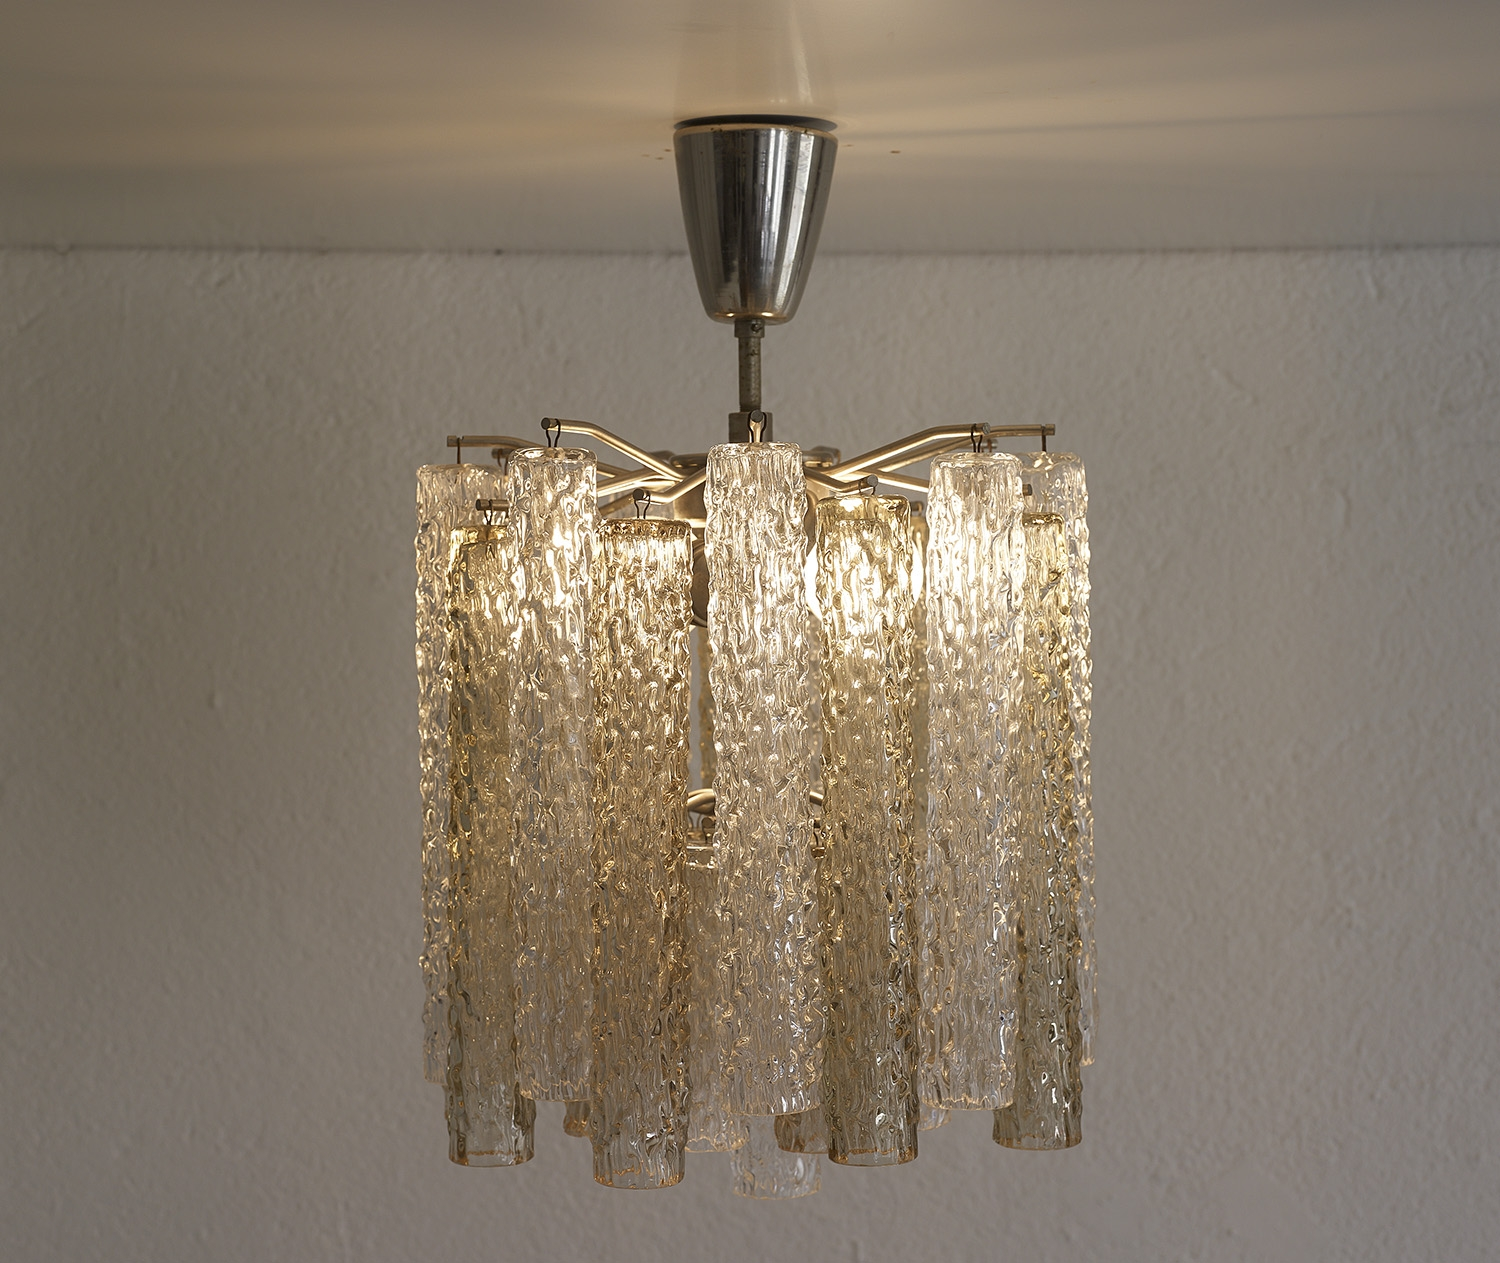 bricoleceiling-light-by-venini-3-pieces-available-image-01